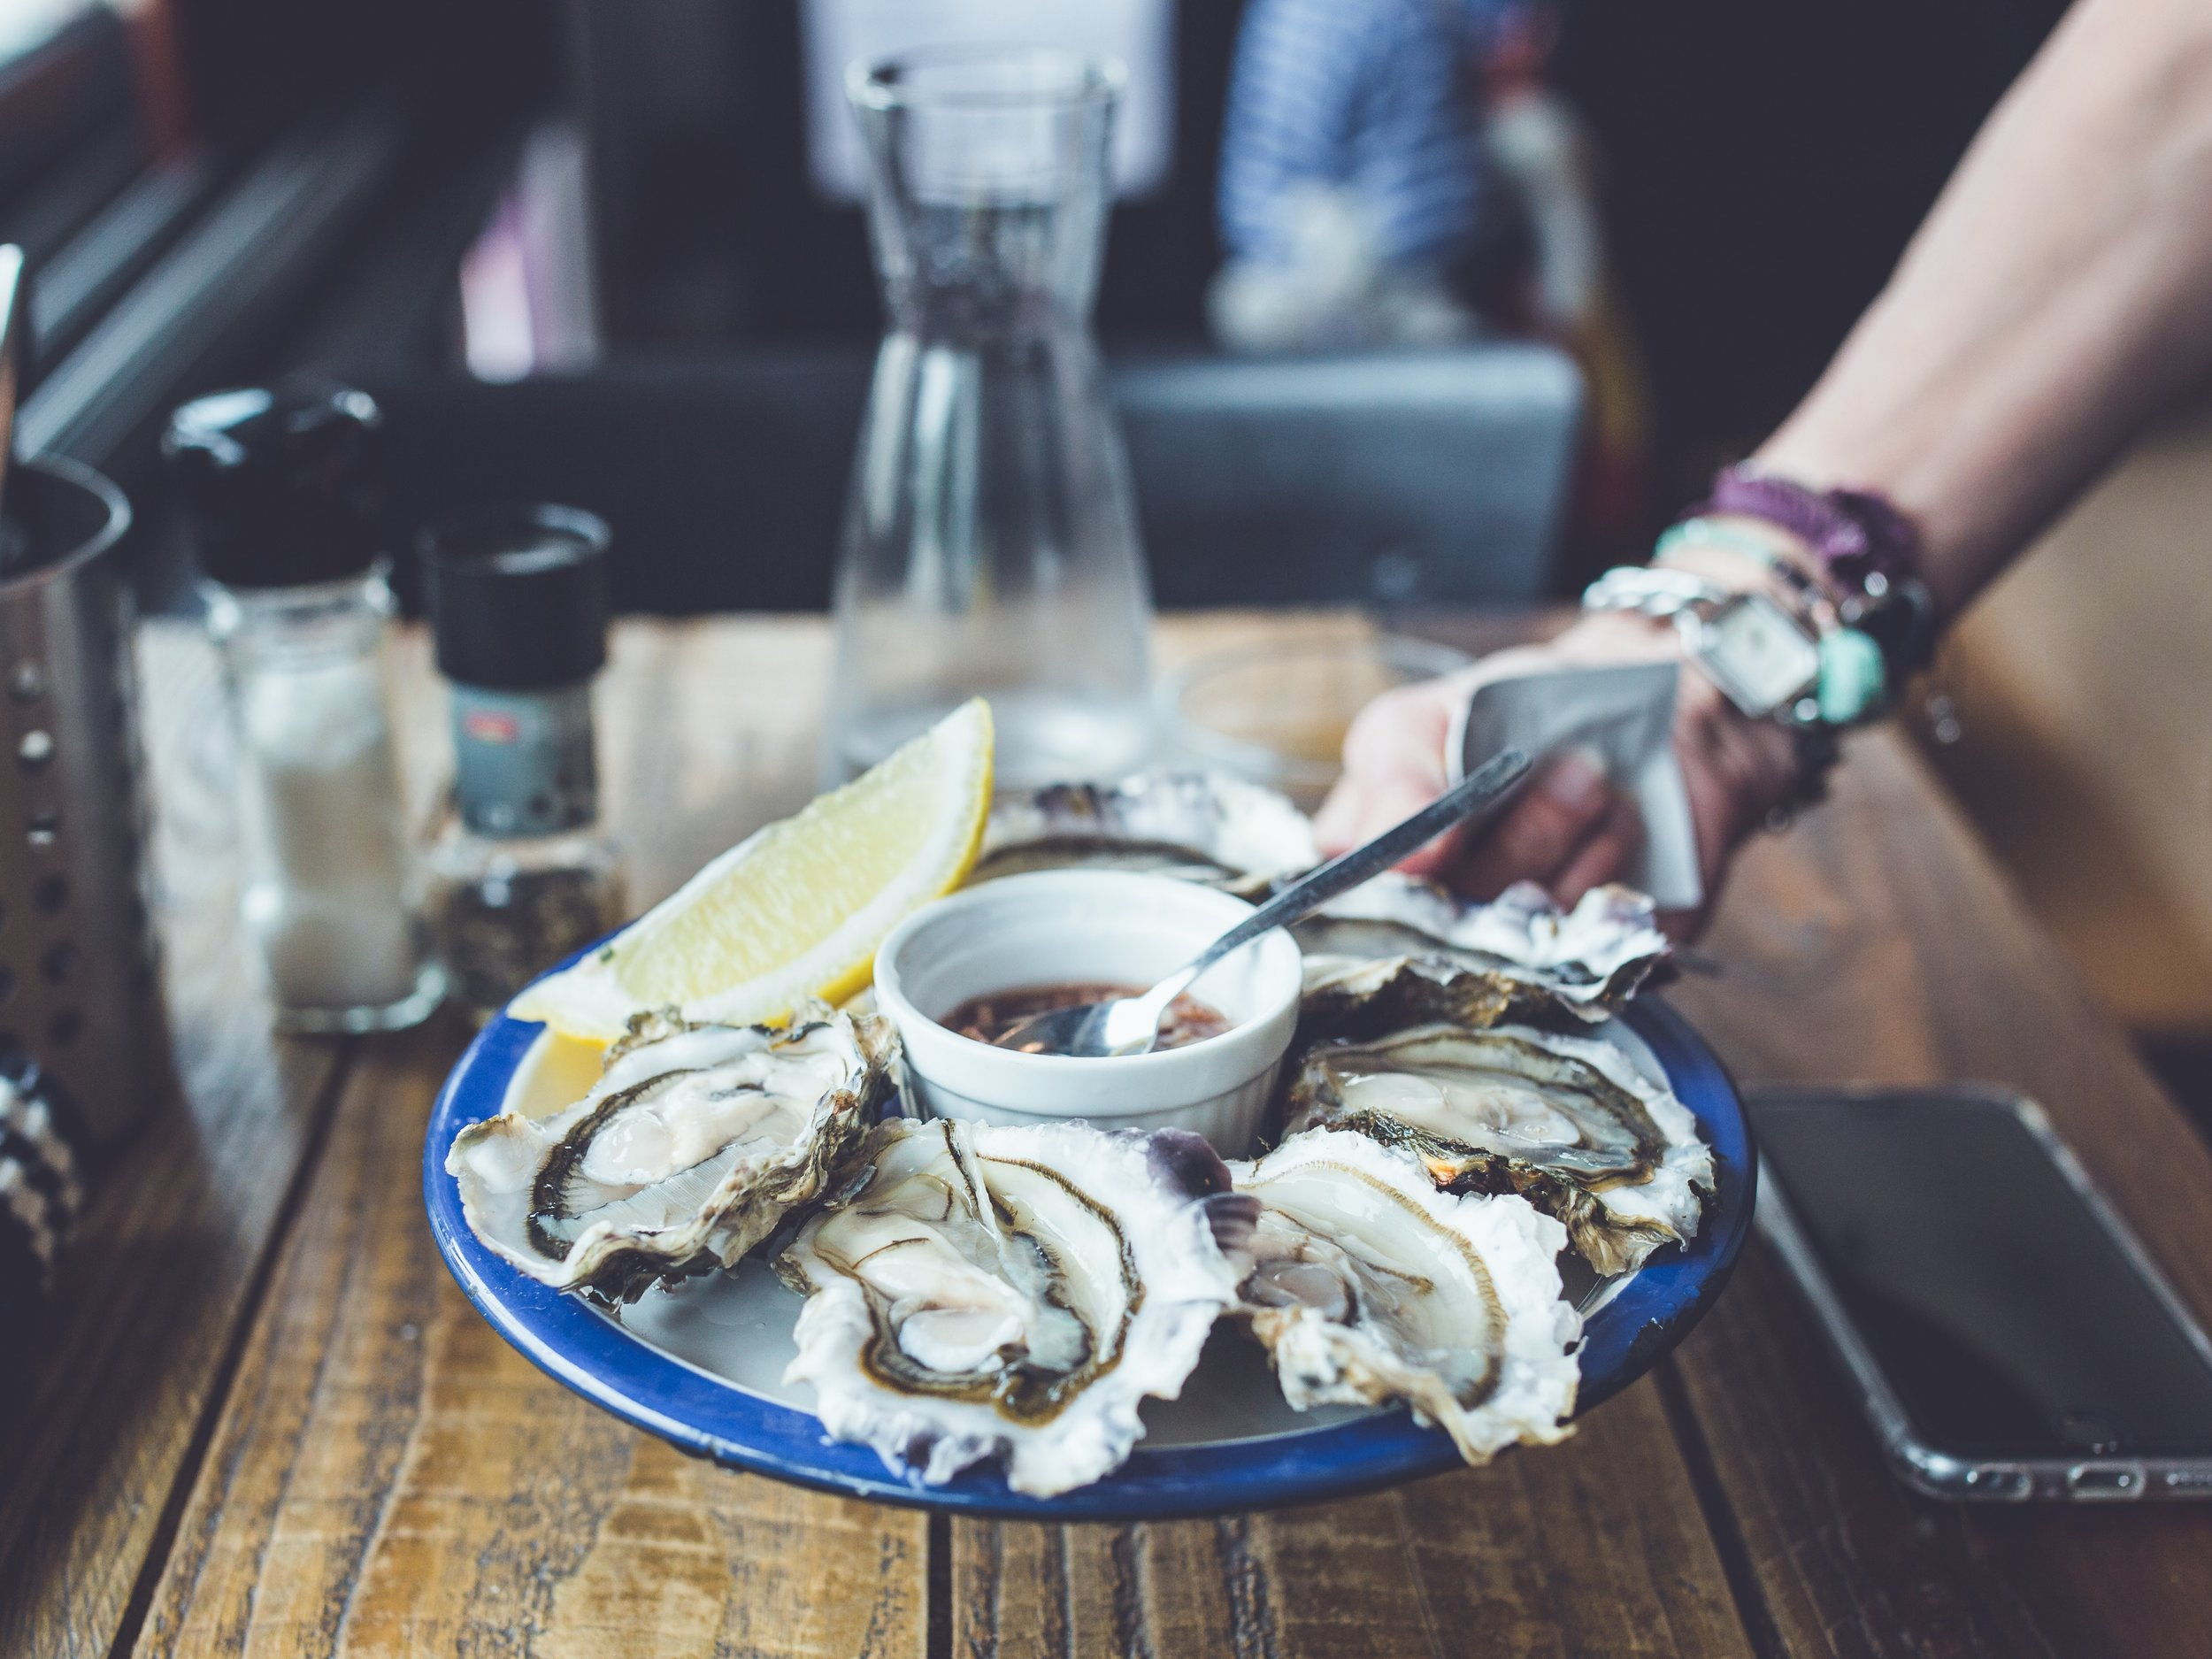 Oysters - Sarah's 'must try' dish